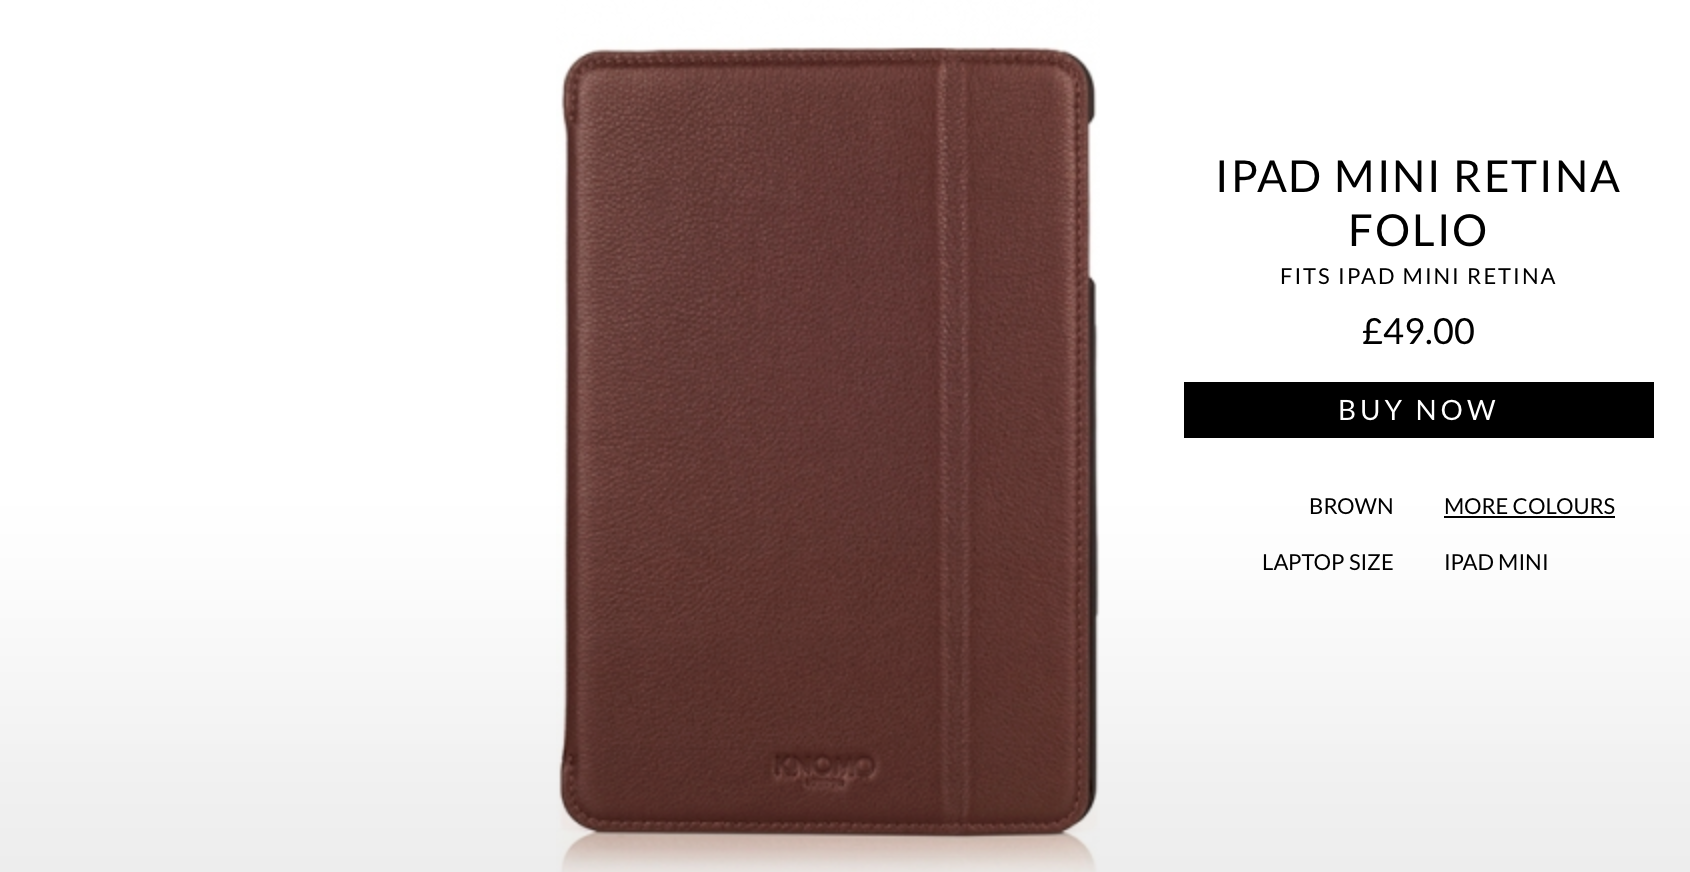 KNOMO Launches A Luxurious Leather Folio For Apple's Retina iPad mini